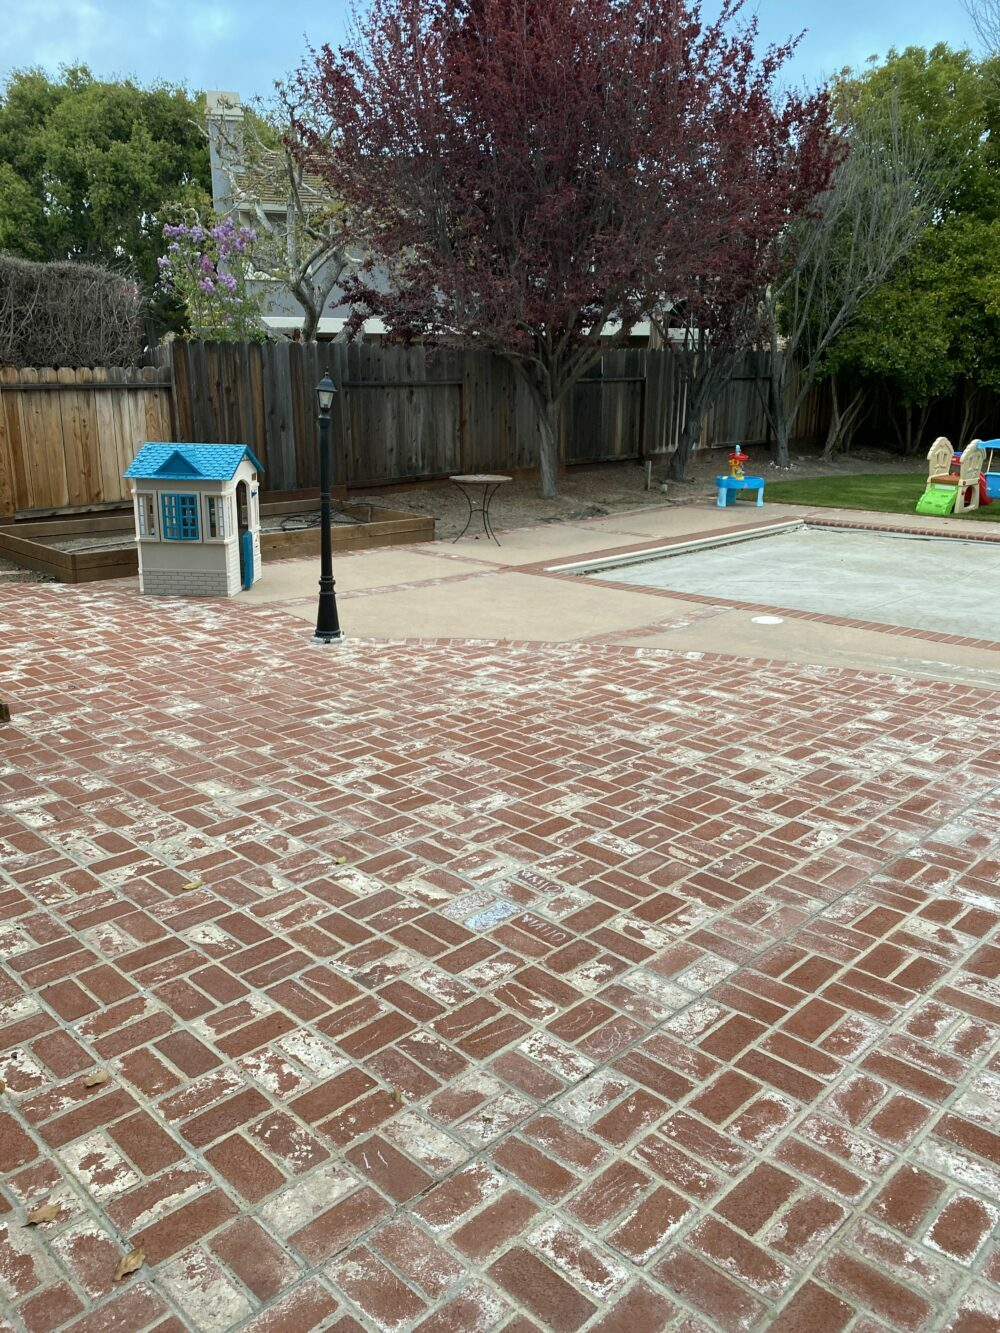 Outdoor Living Room by popular Monterey life and style blog, Haute Beauty Guide: before image of a brick patio with a black lamp post, covered swimming pool, and kids' playhouse.